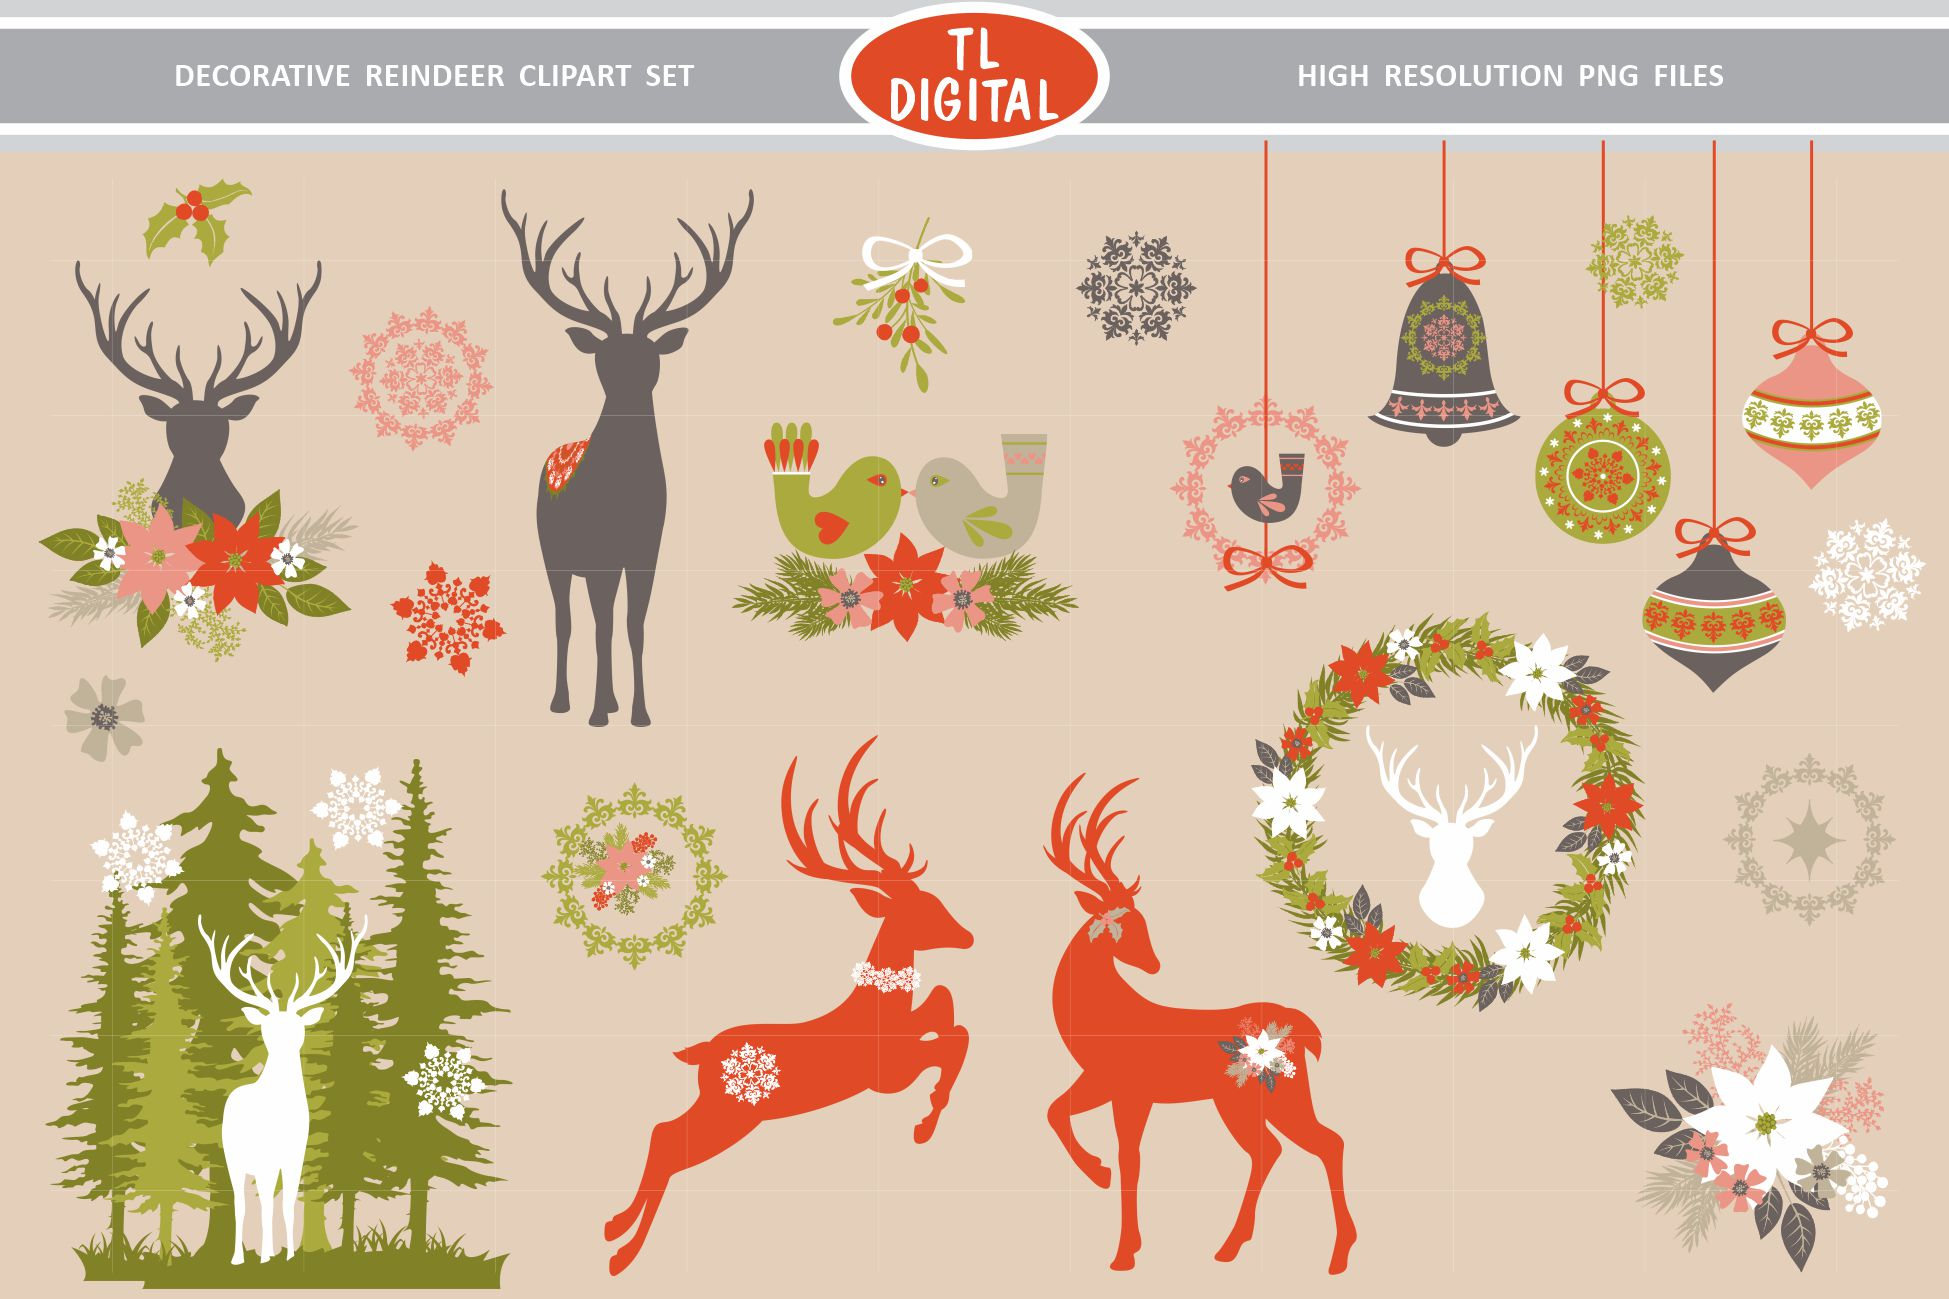 Free Images Reindeer, Download Free Clip Art, Free Clip Art on Clipart  Library